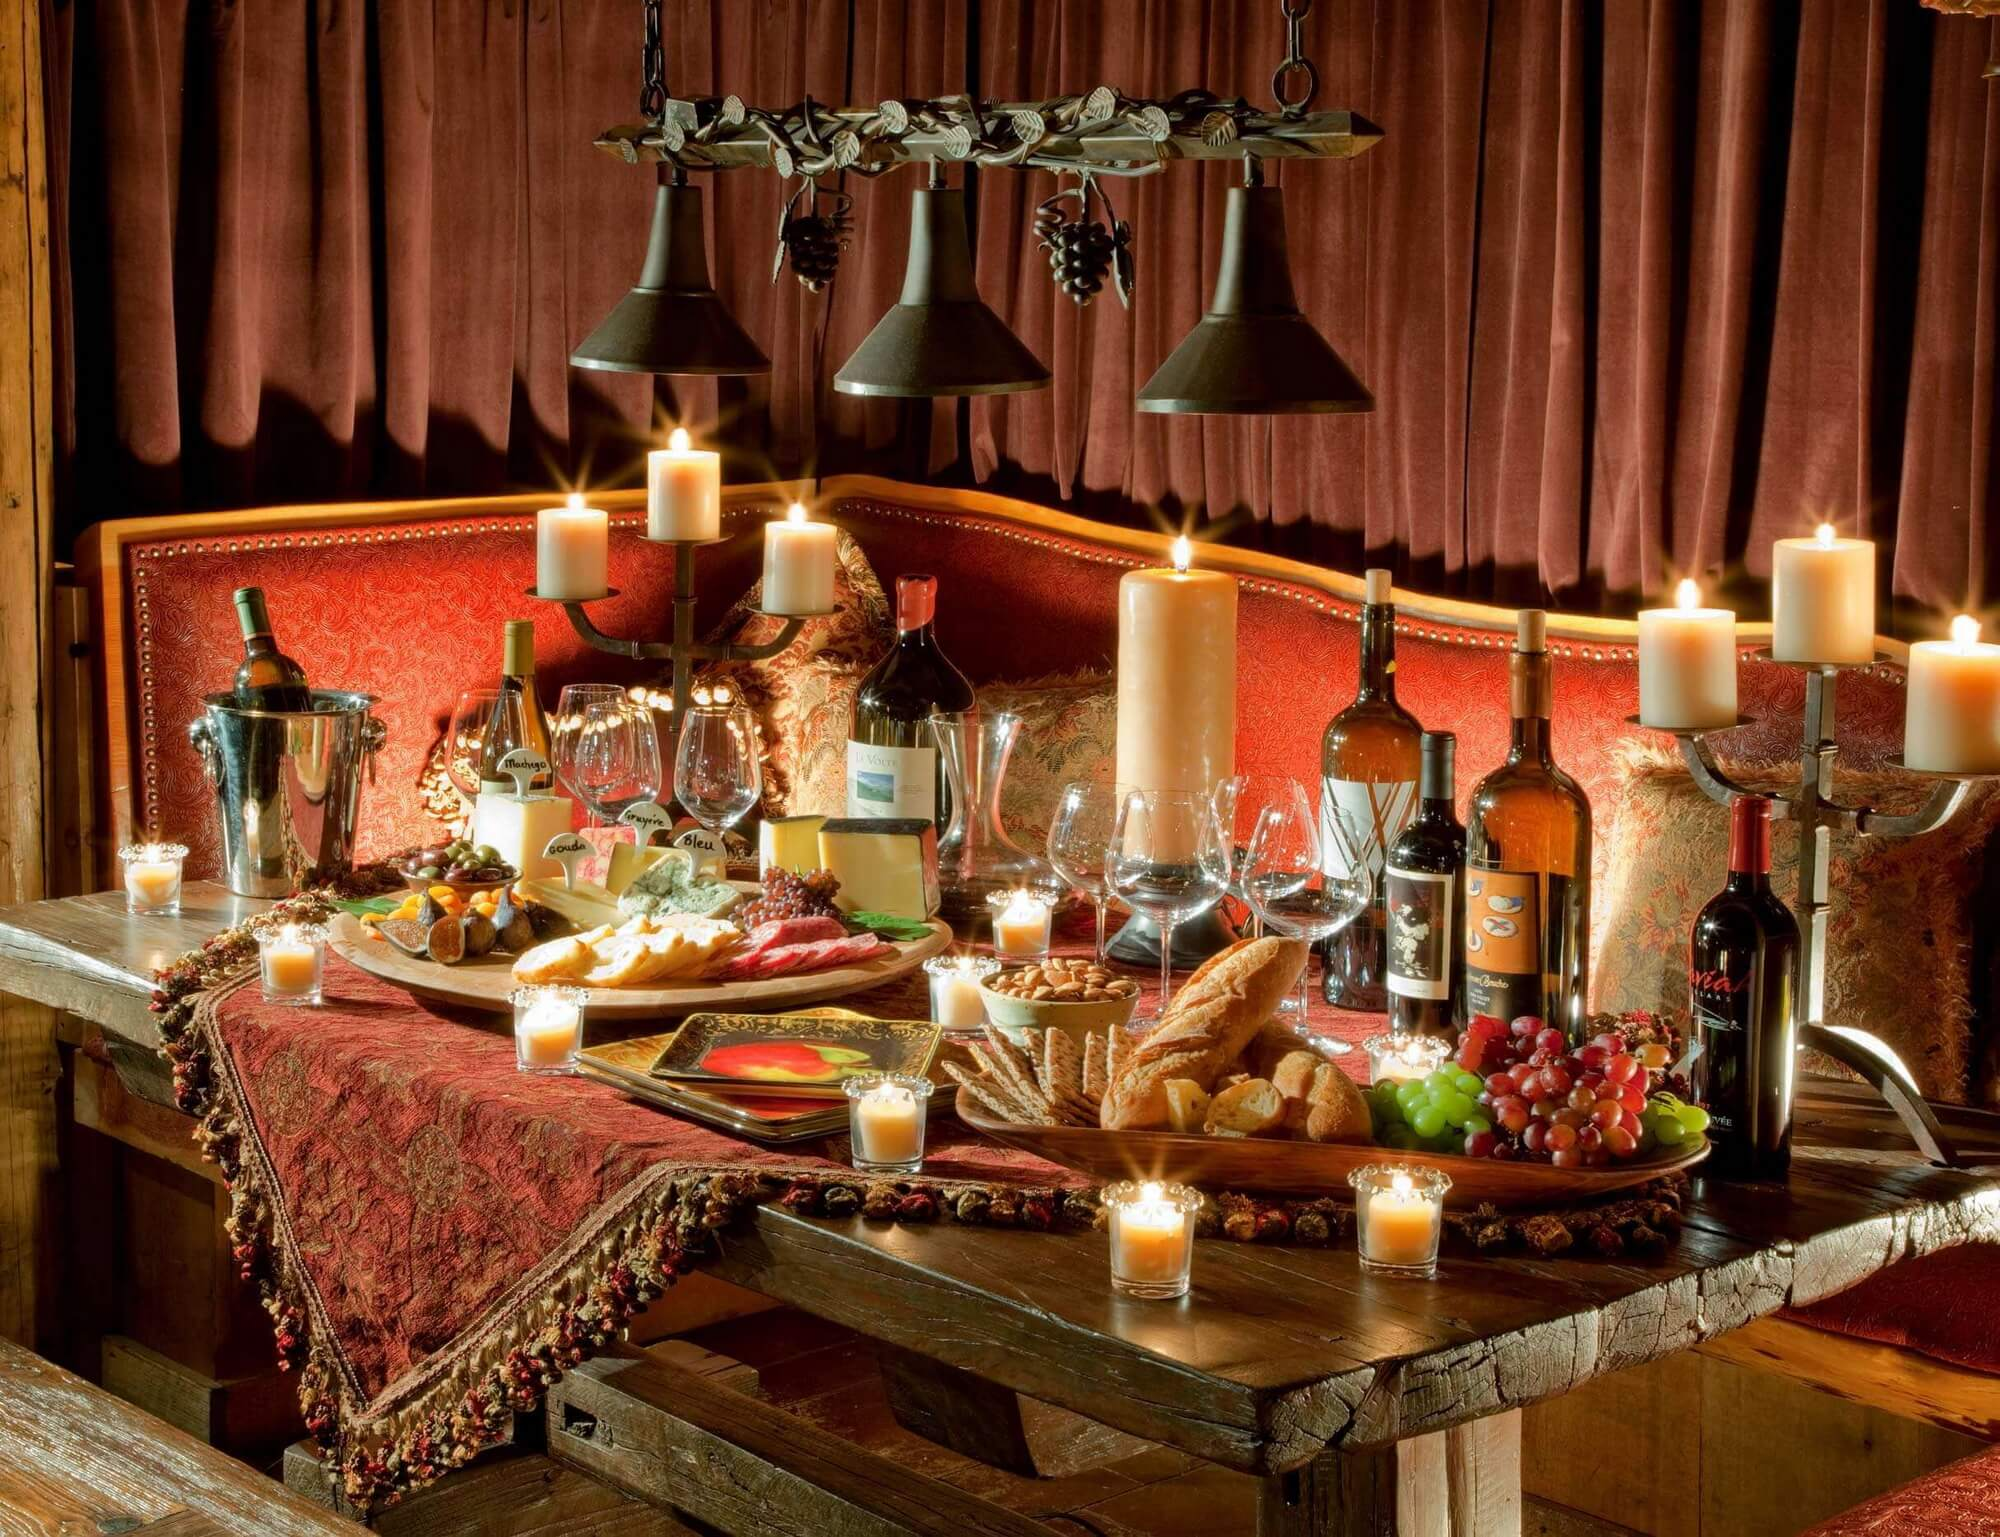 dining table with several bottles of wine, candles and fruit and cheese platters